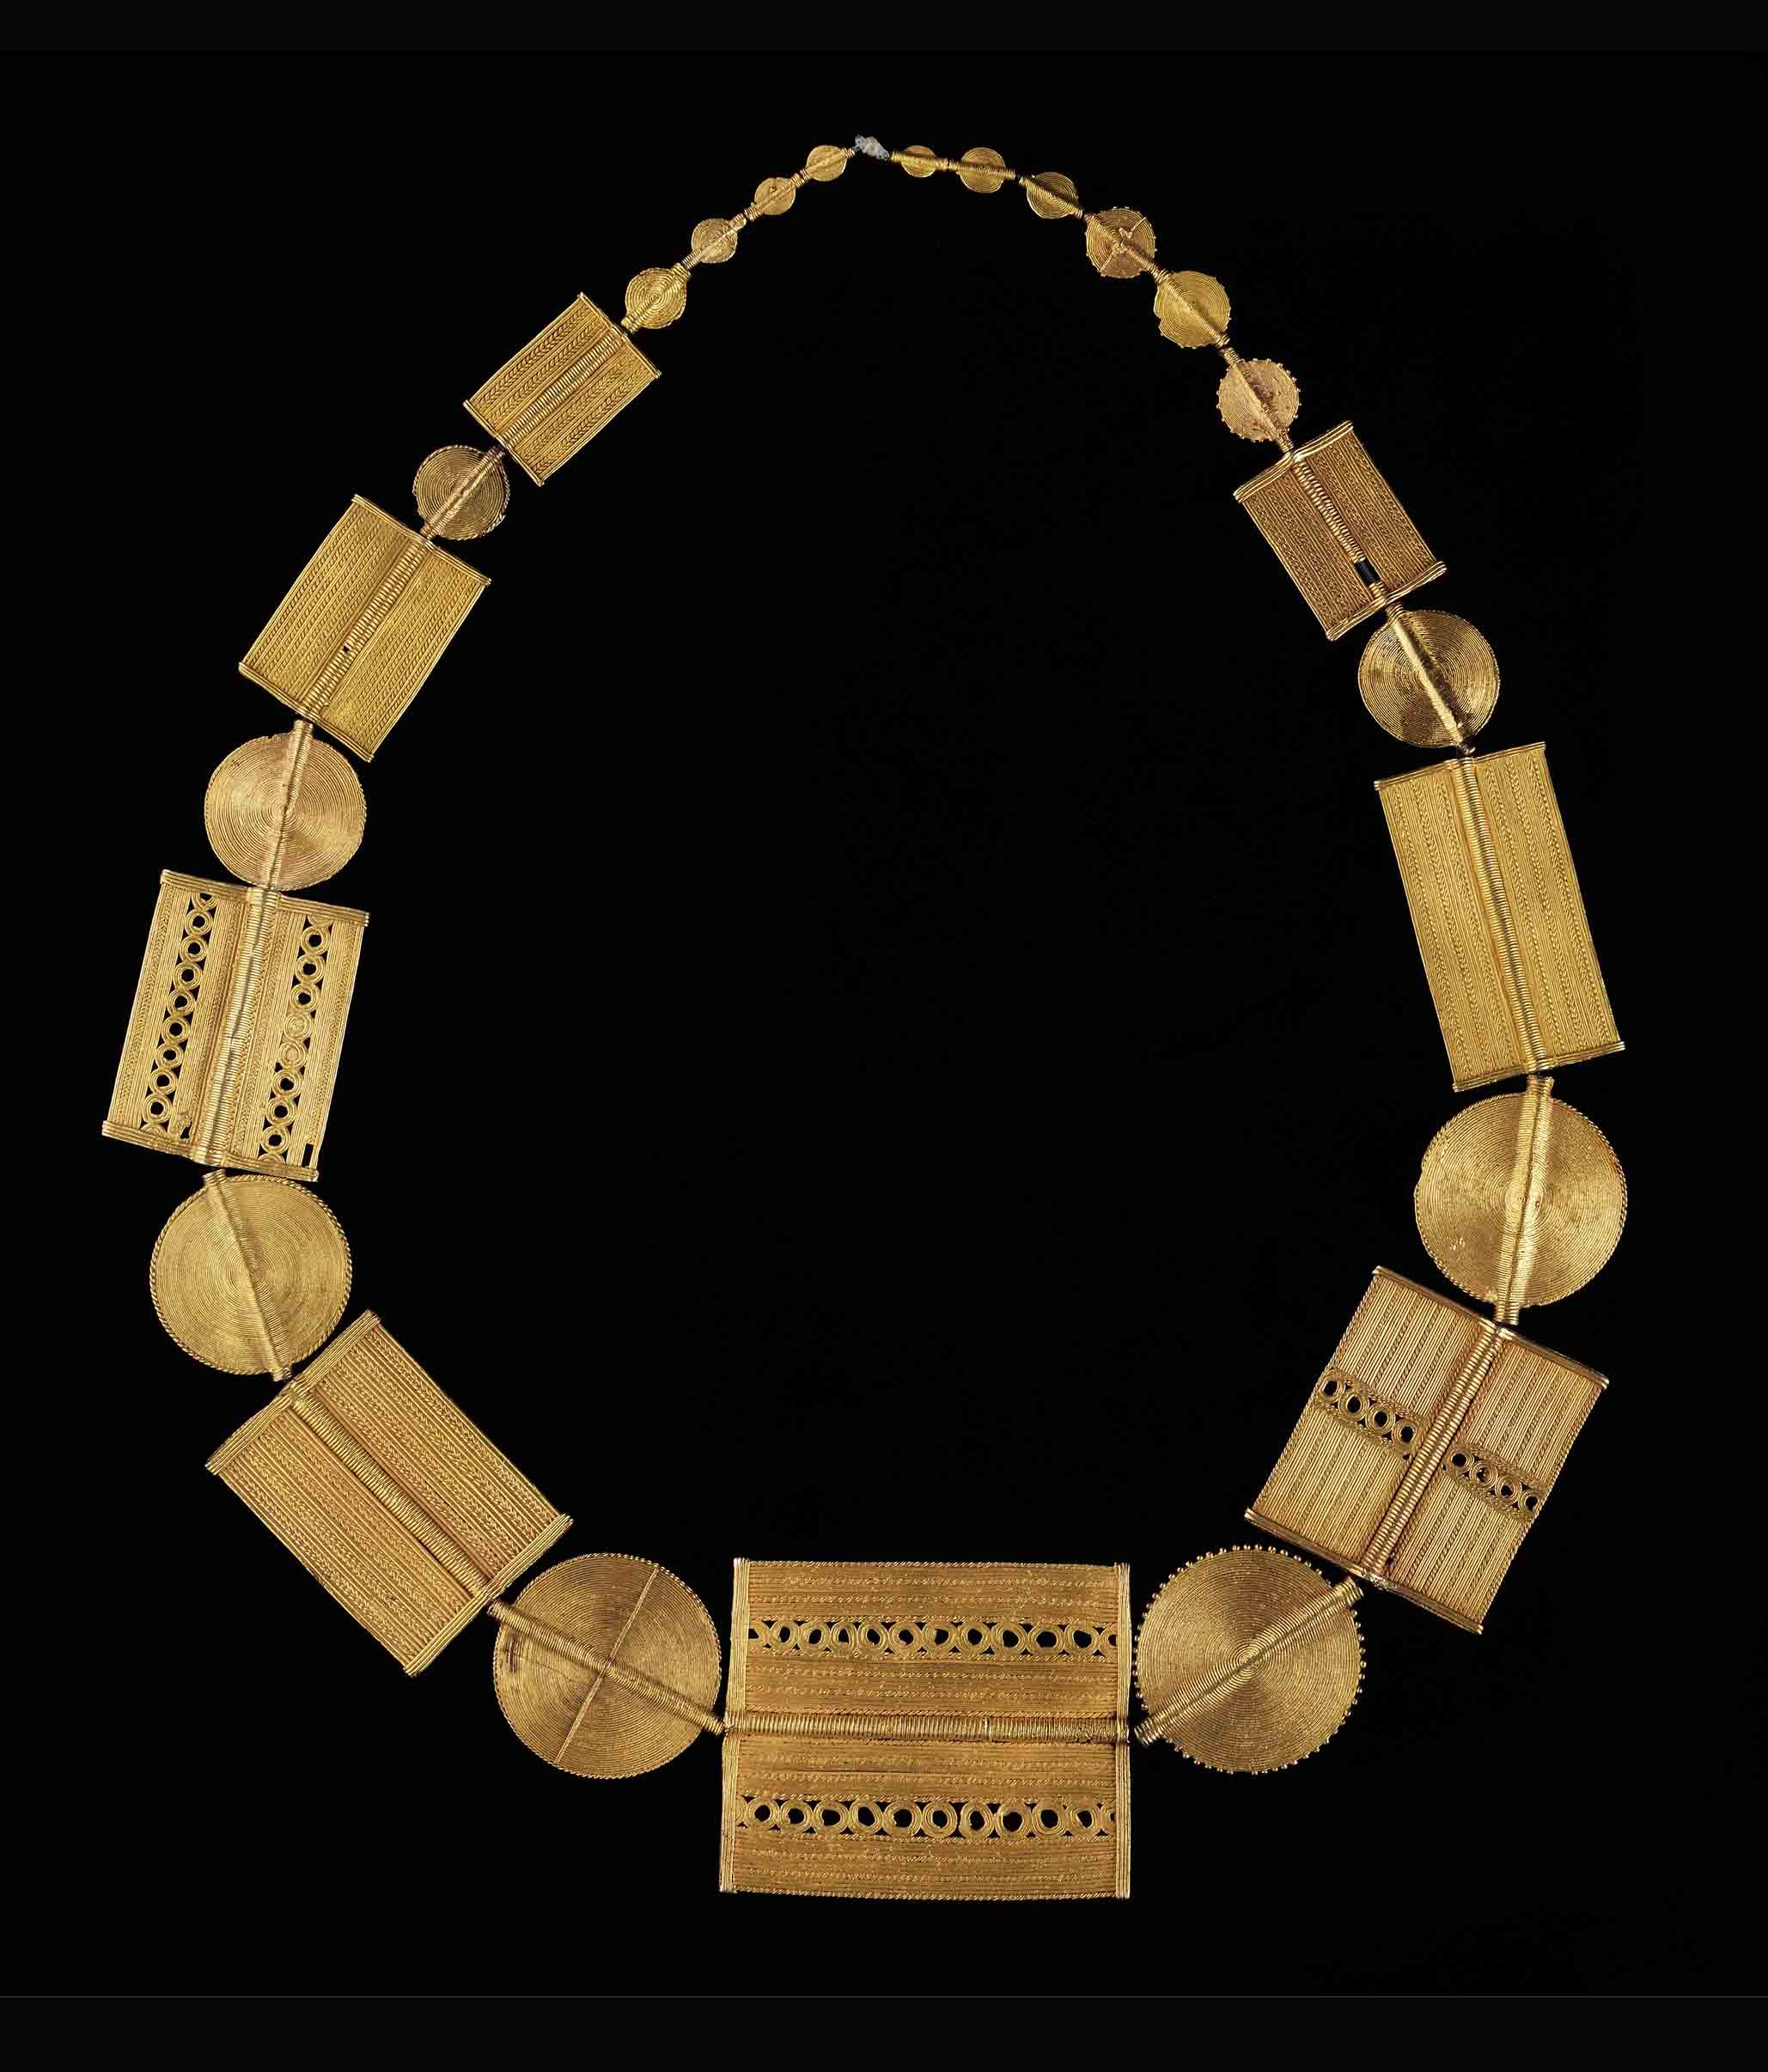 africa necklace from the akan people of the ivory coast the gold content varies